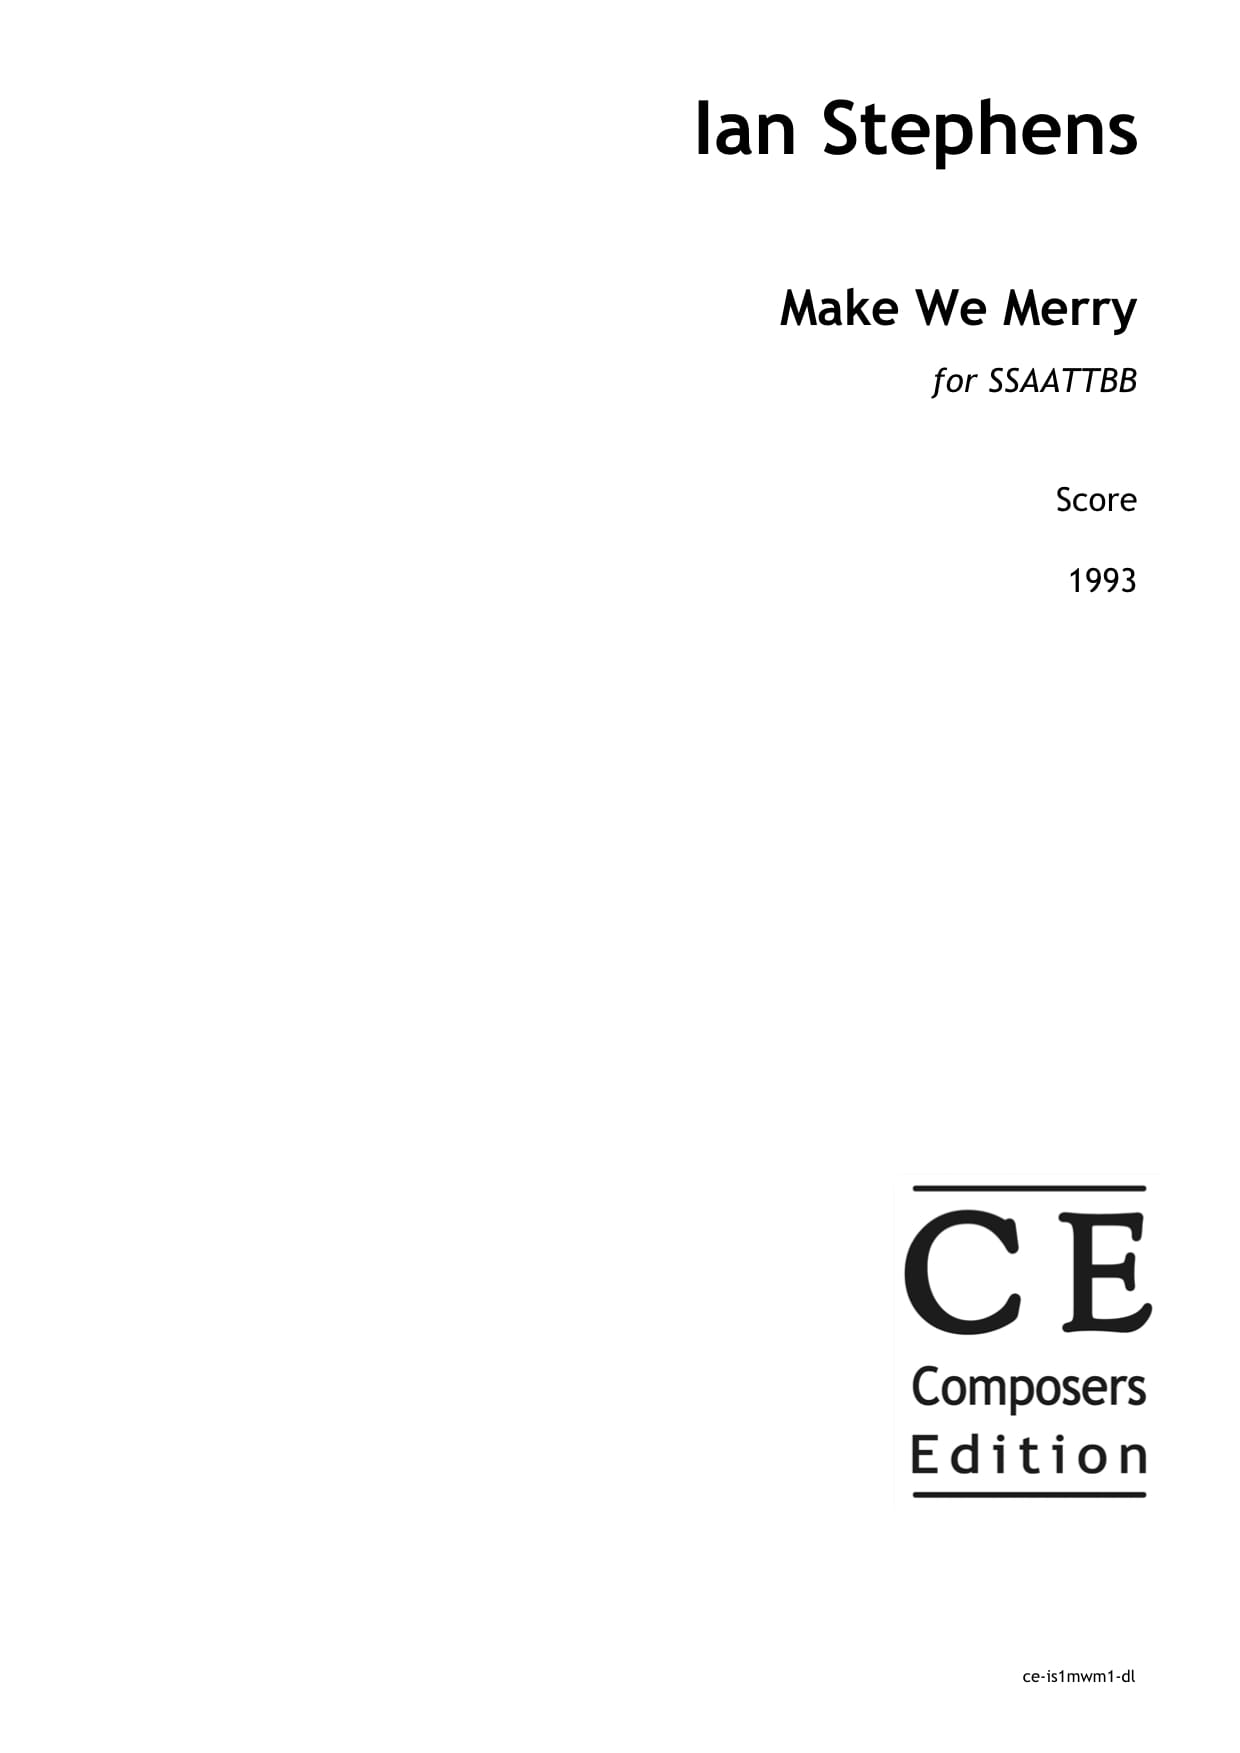 Ian Stephens: Make We Merry